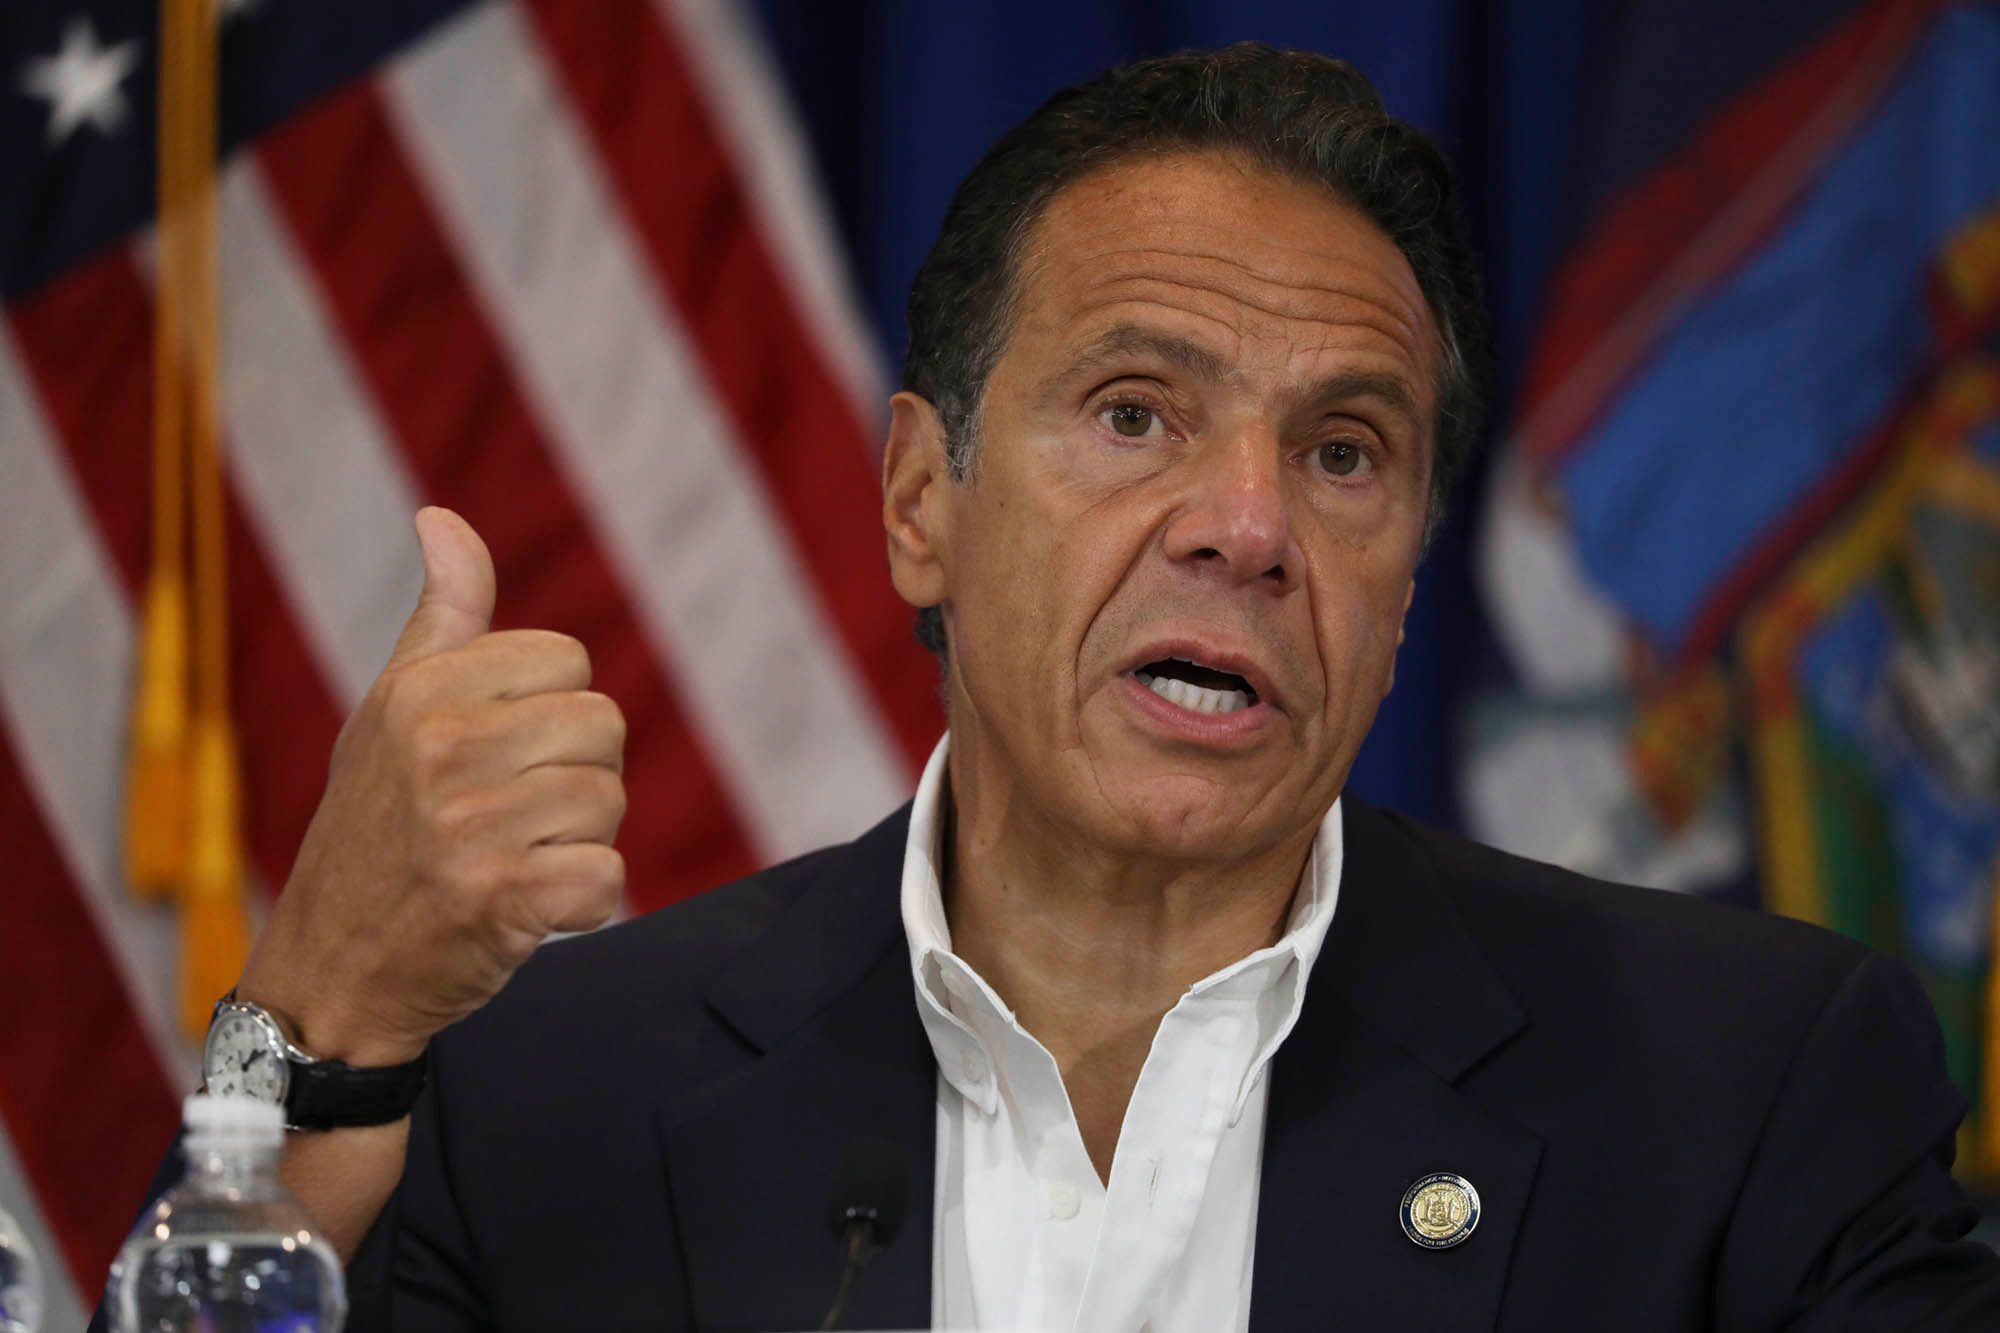 It is unknown if he will turn in his resignation following the allegations that have been going on for most of 2021. Gov. Andrew Cuomo visits Georgia over coronavirus outbreak ...